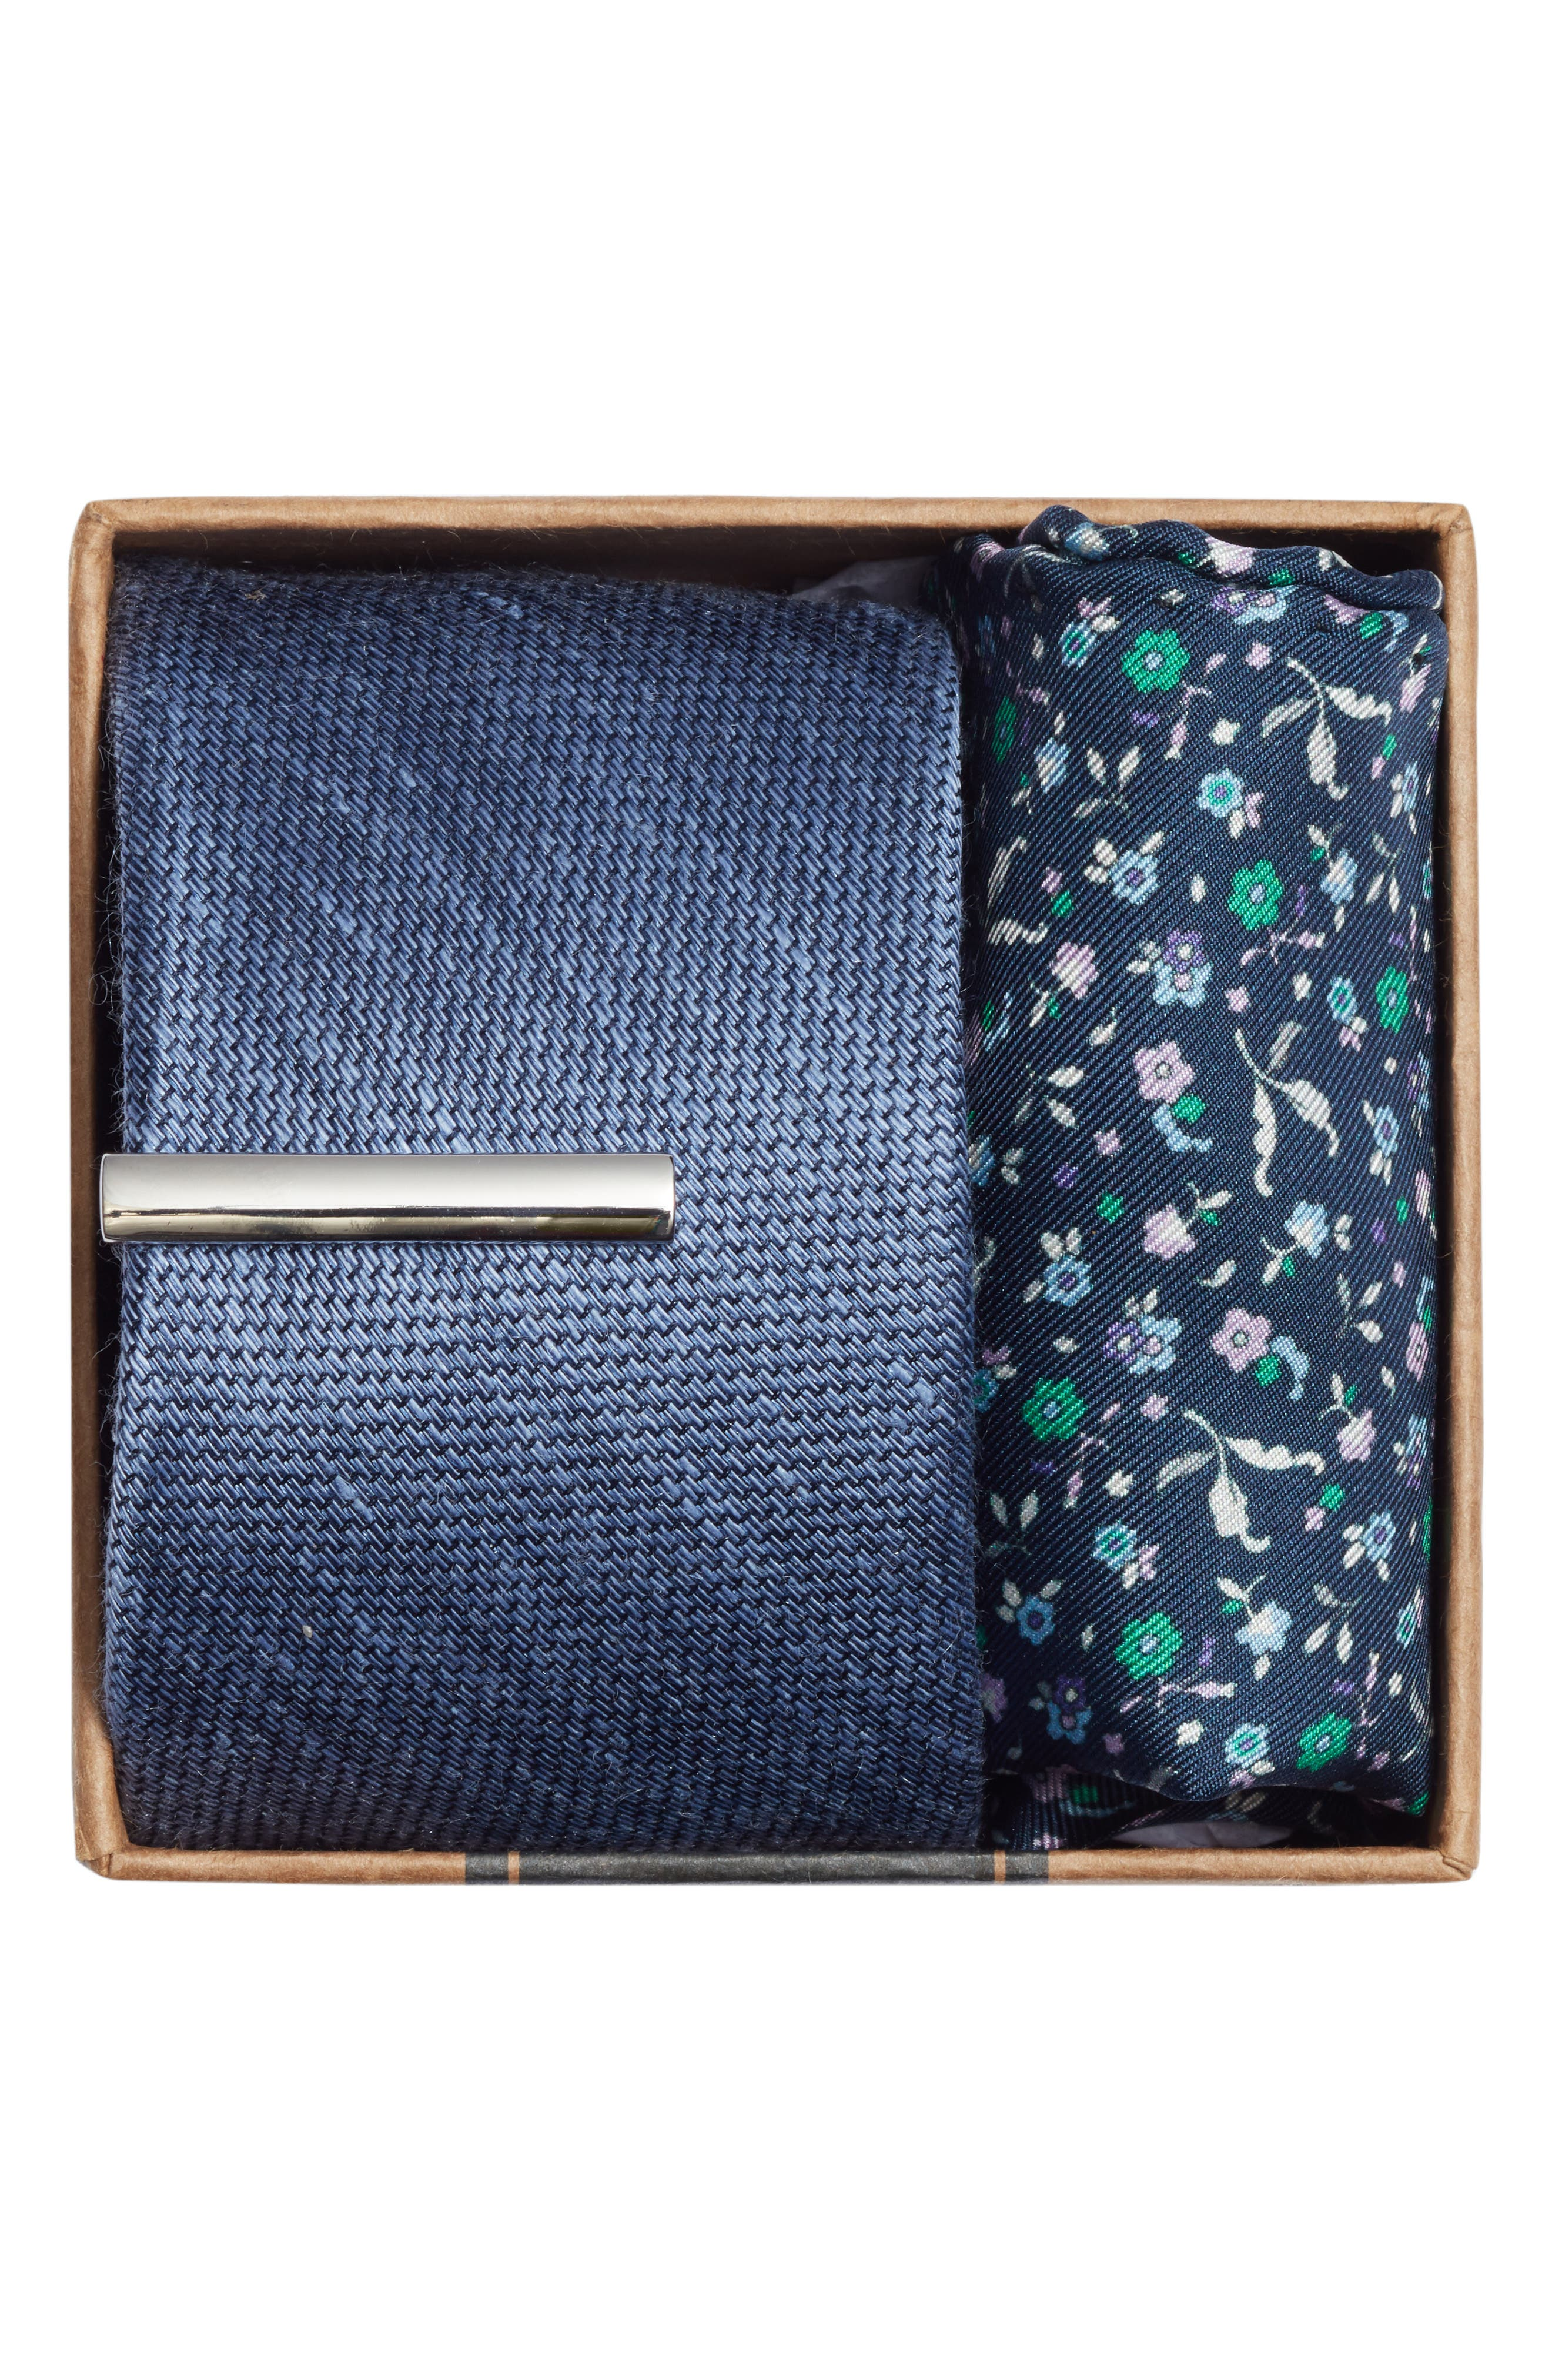 Texture Solid 3-Piece Skinny Tie Style Box,                             Alternate thumbnail 2, color,                             LIGHT BLUE